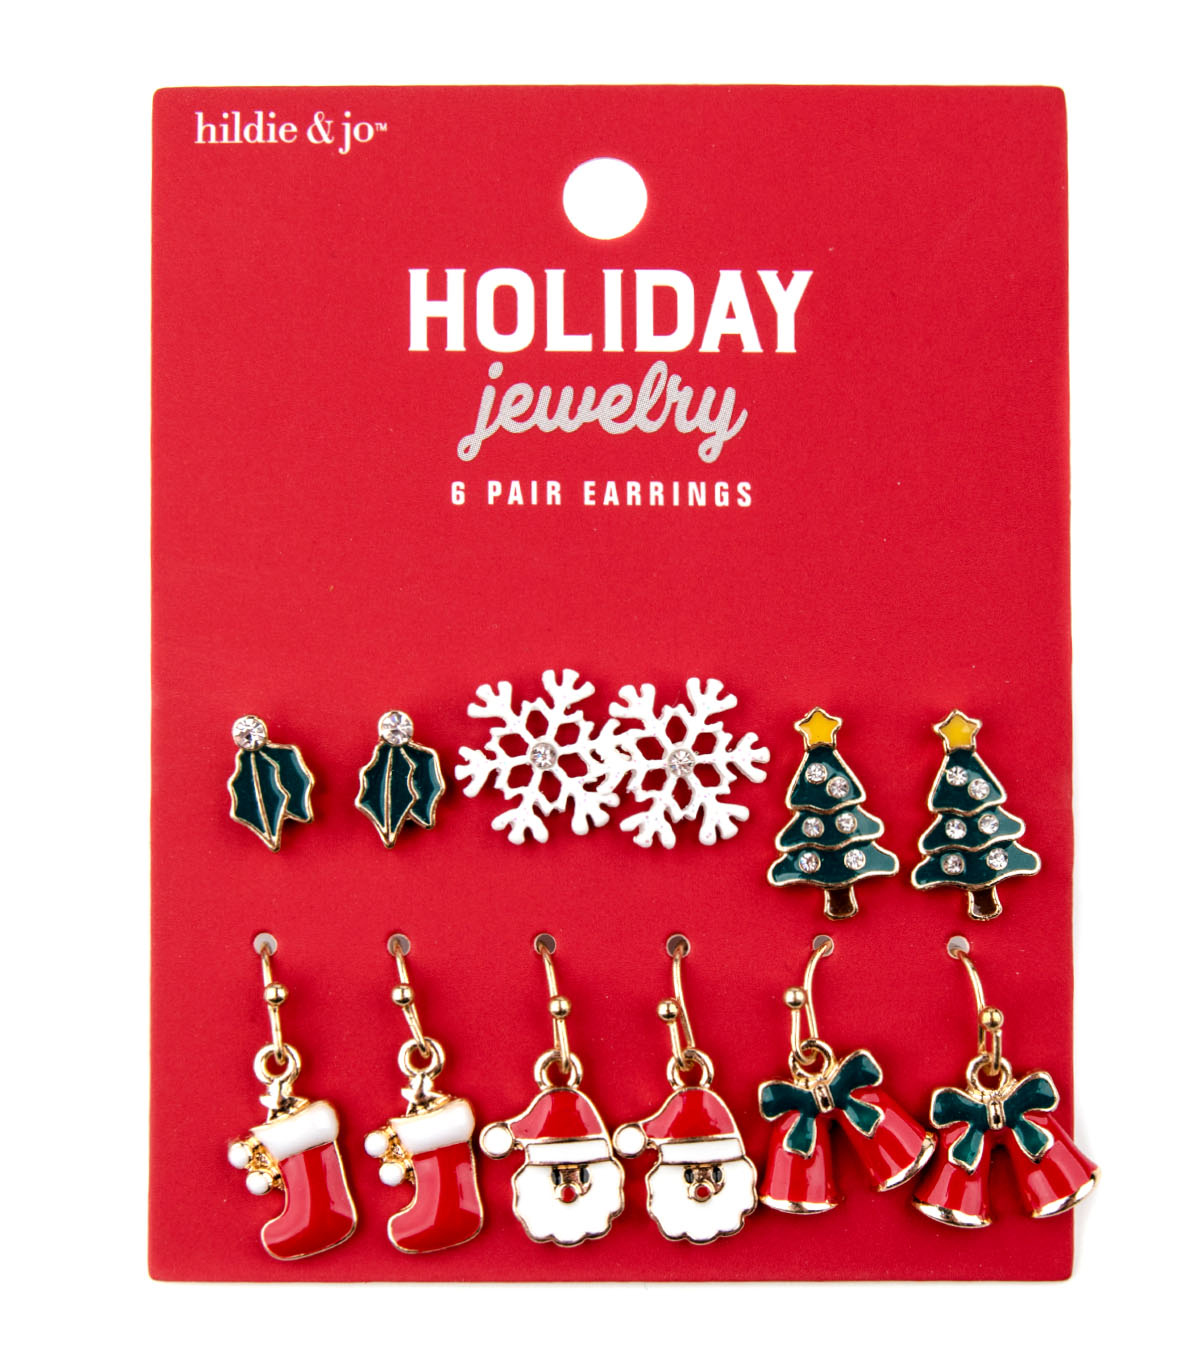 hildie & jo Christmas Holiday Jewelry 6-pair Gold Earrings